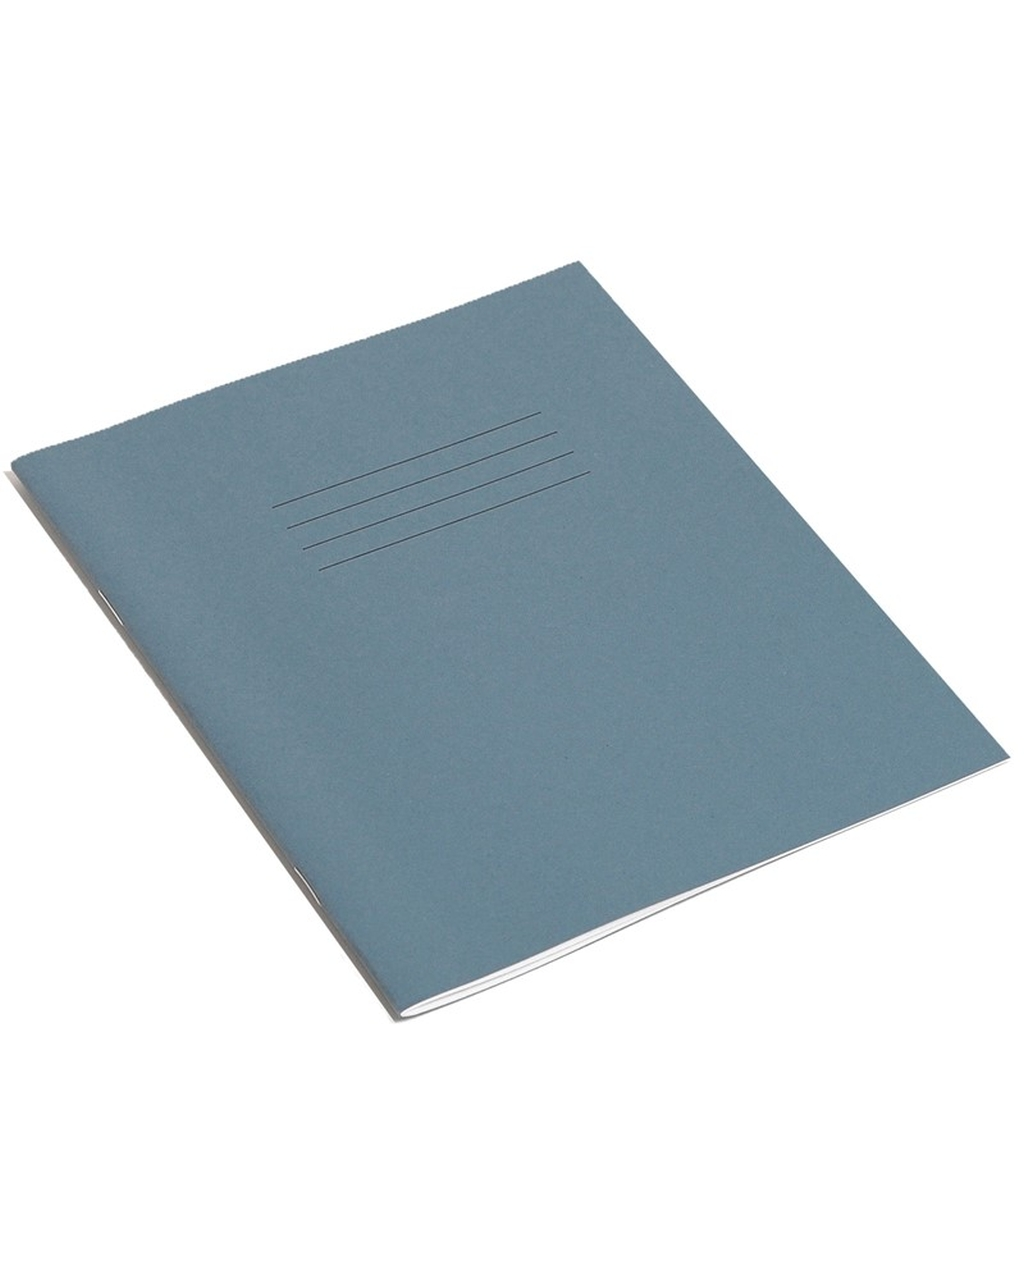 Exercise Book 8 x 6.5 (203 x 165mm) Dark Blue Cover 8mm Ruled & Margin 48 Pages